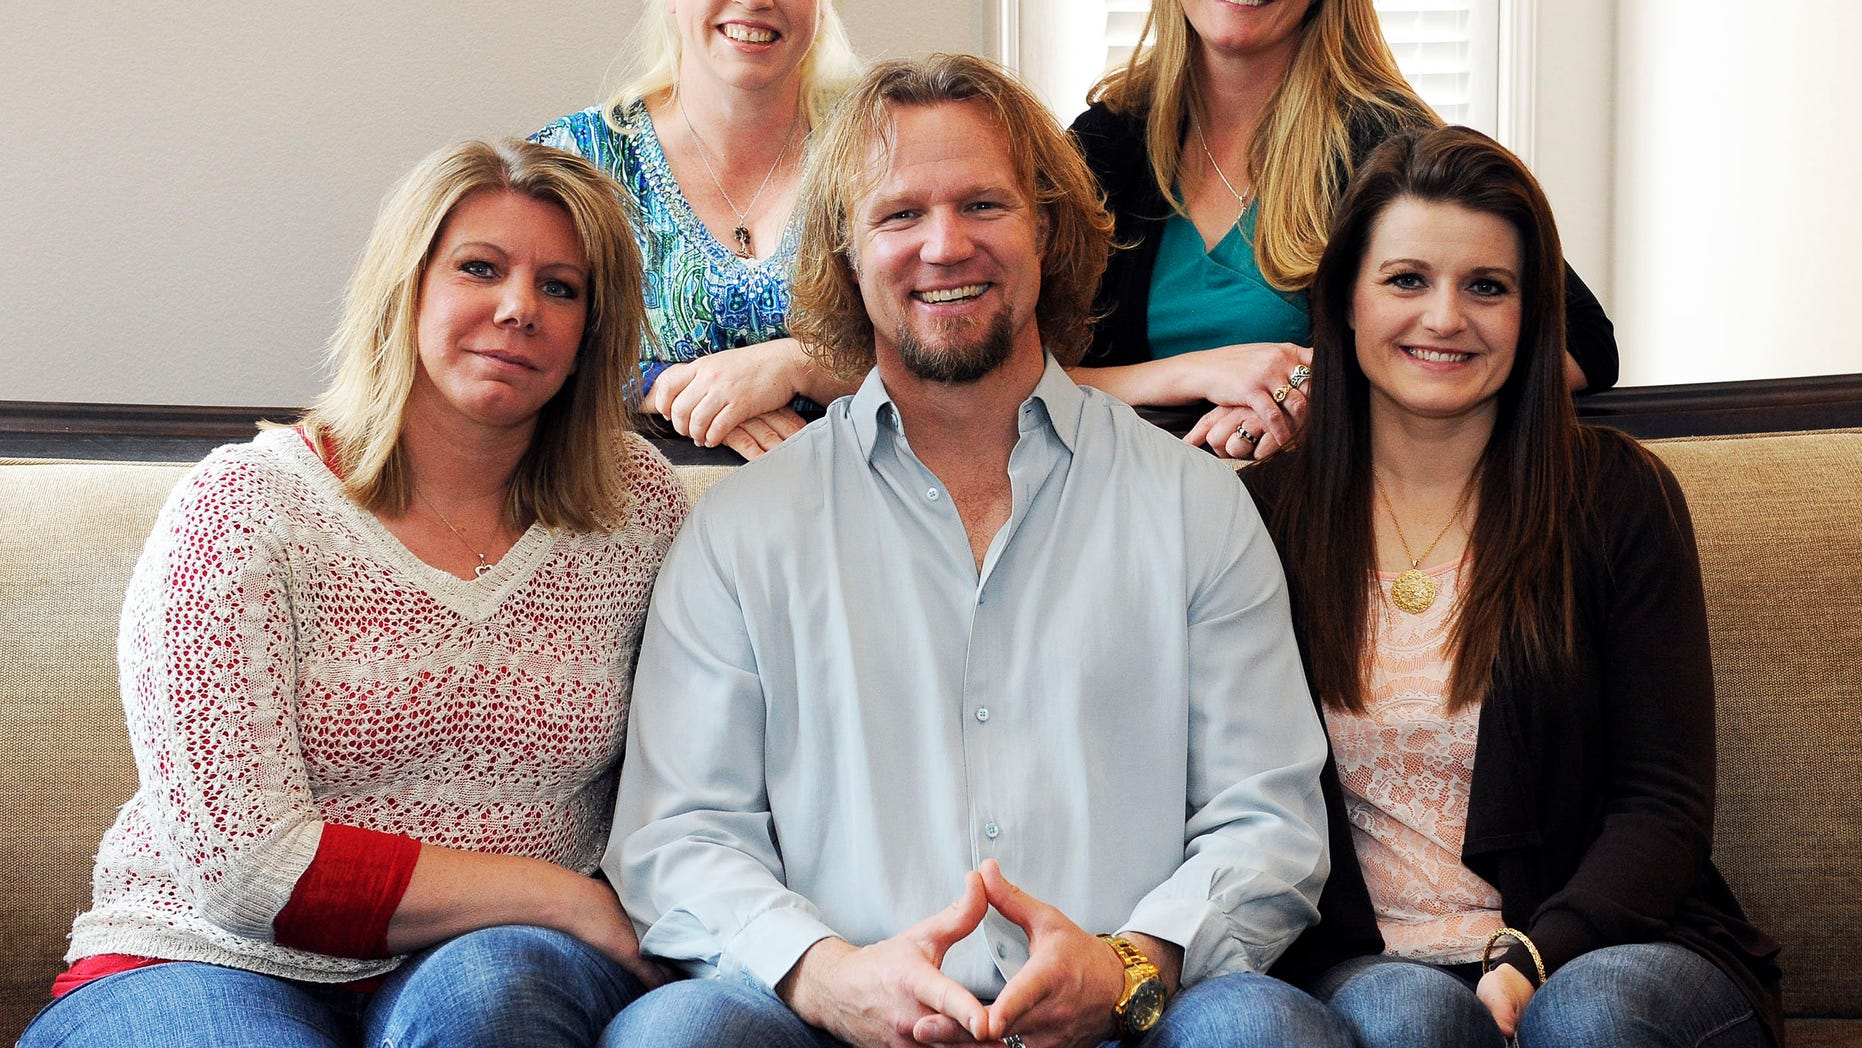 July 10, 2013. Kody Brown poses with his wives at one of their homes in Las Vegas.